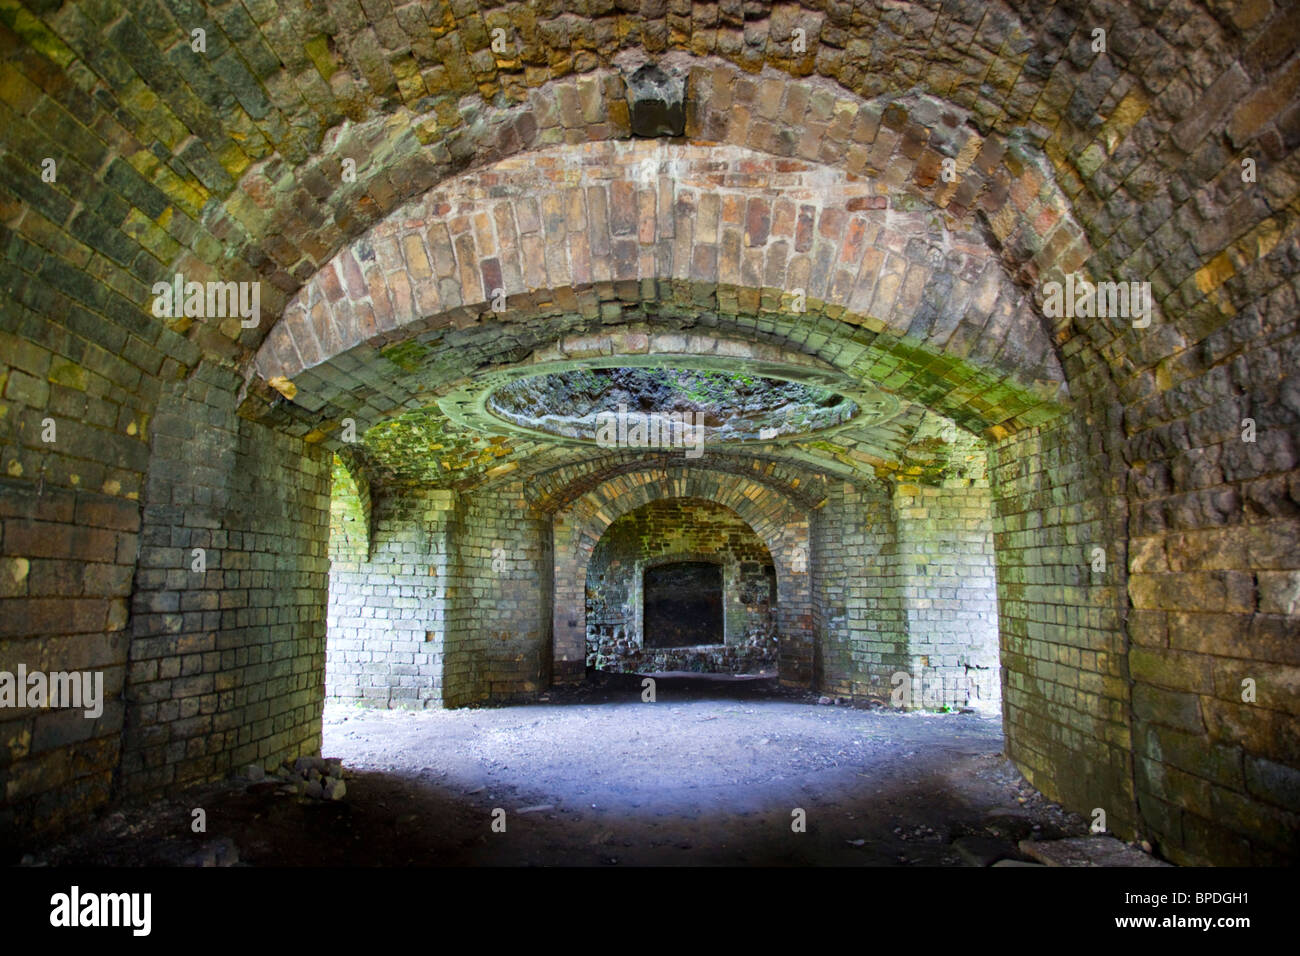 Blaenavon ironworks; Wales; furnace; part of the industrial World Heritage Site - Stock Image